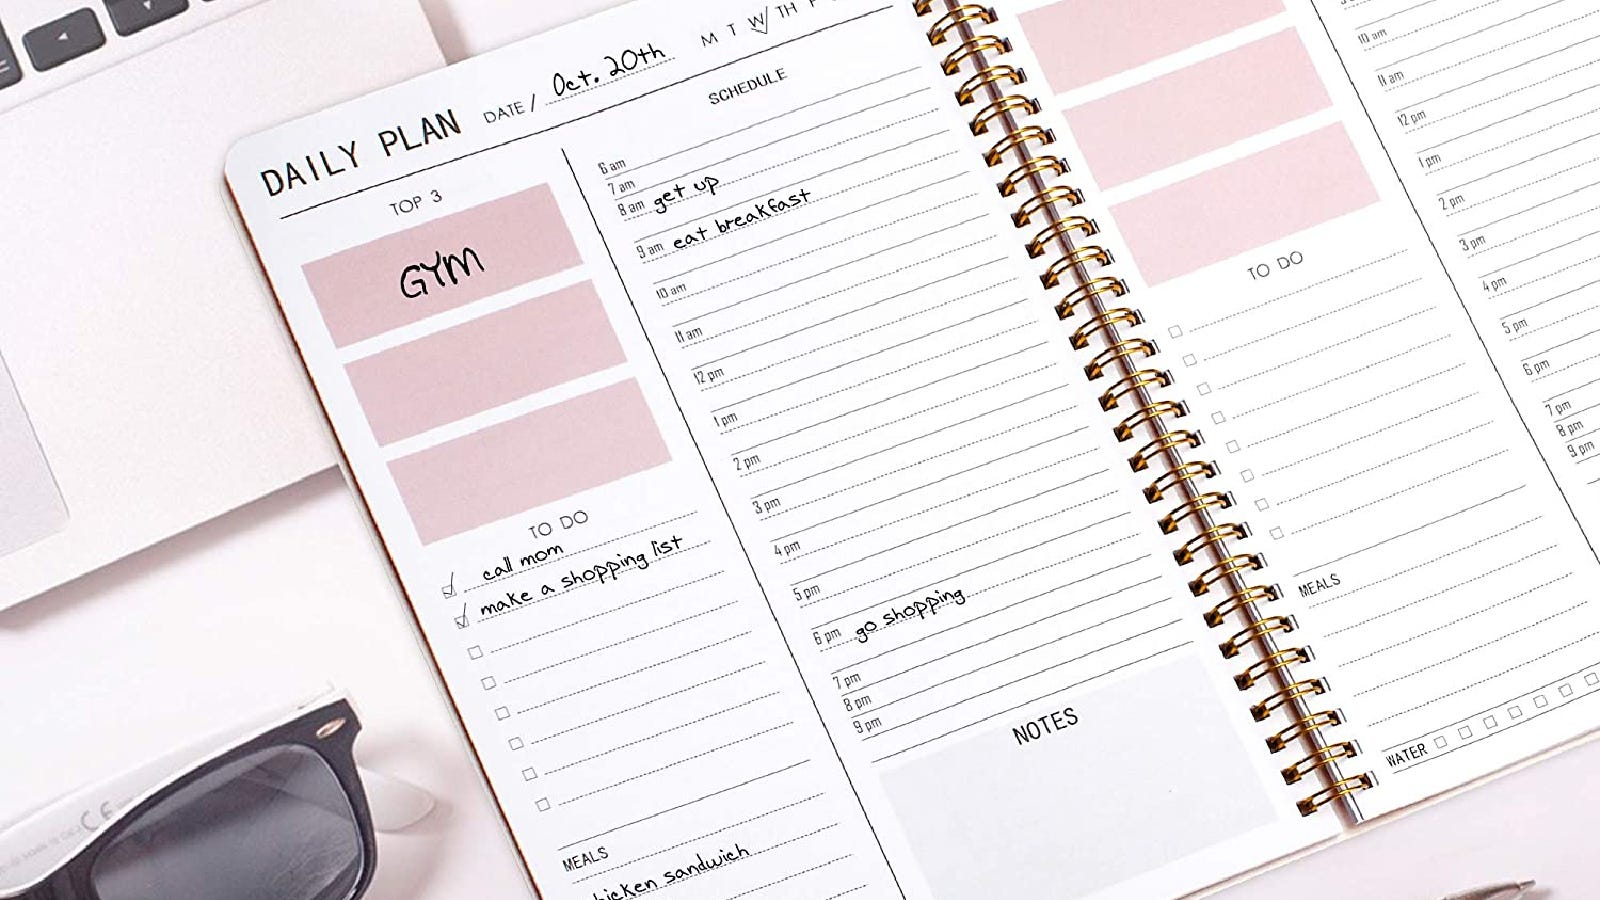 a planner on a desk open to show daily plans